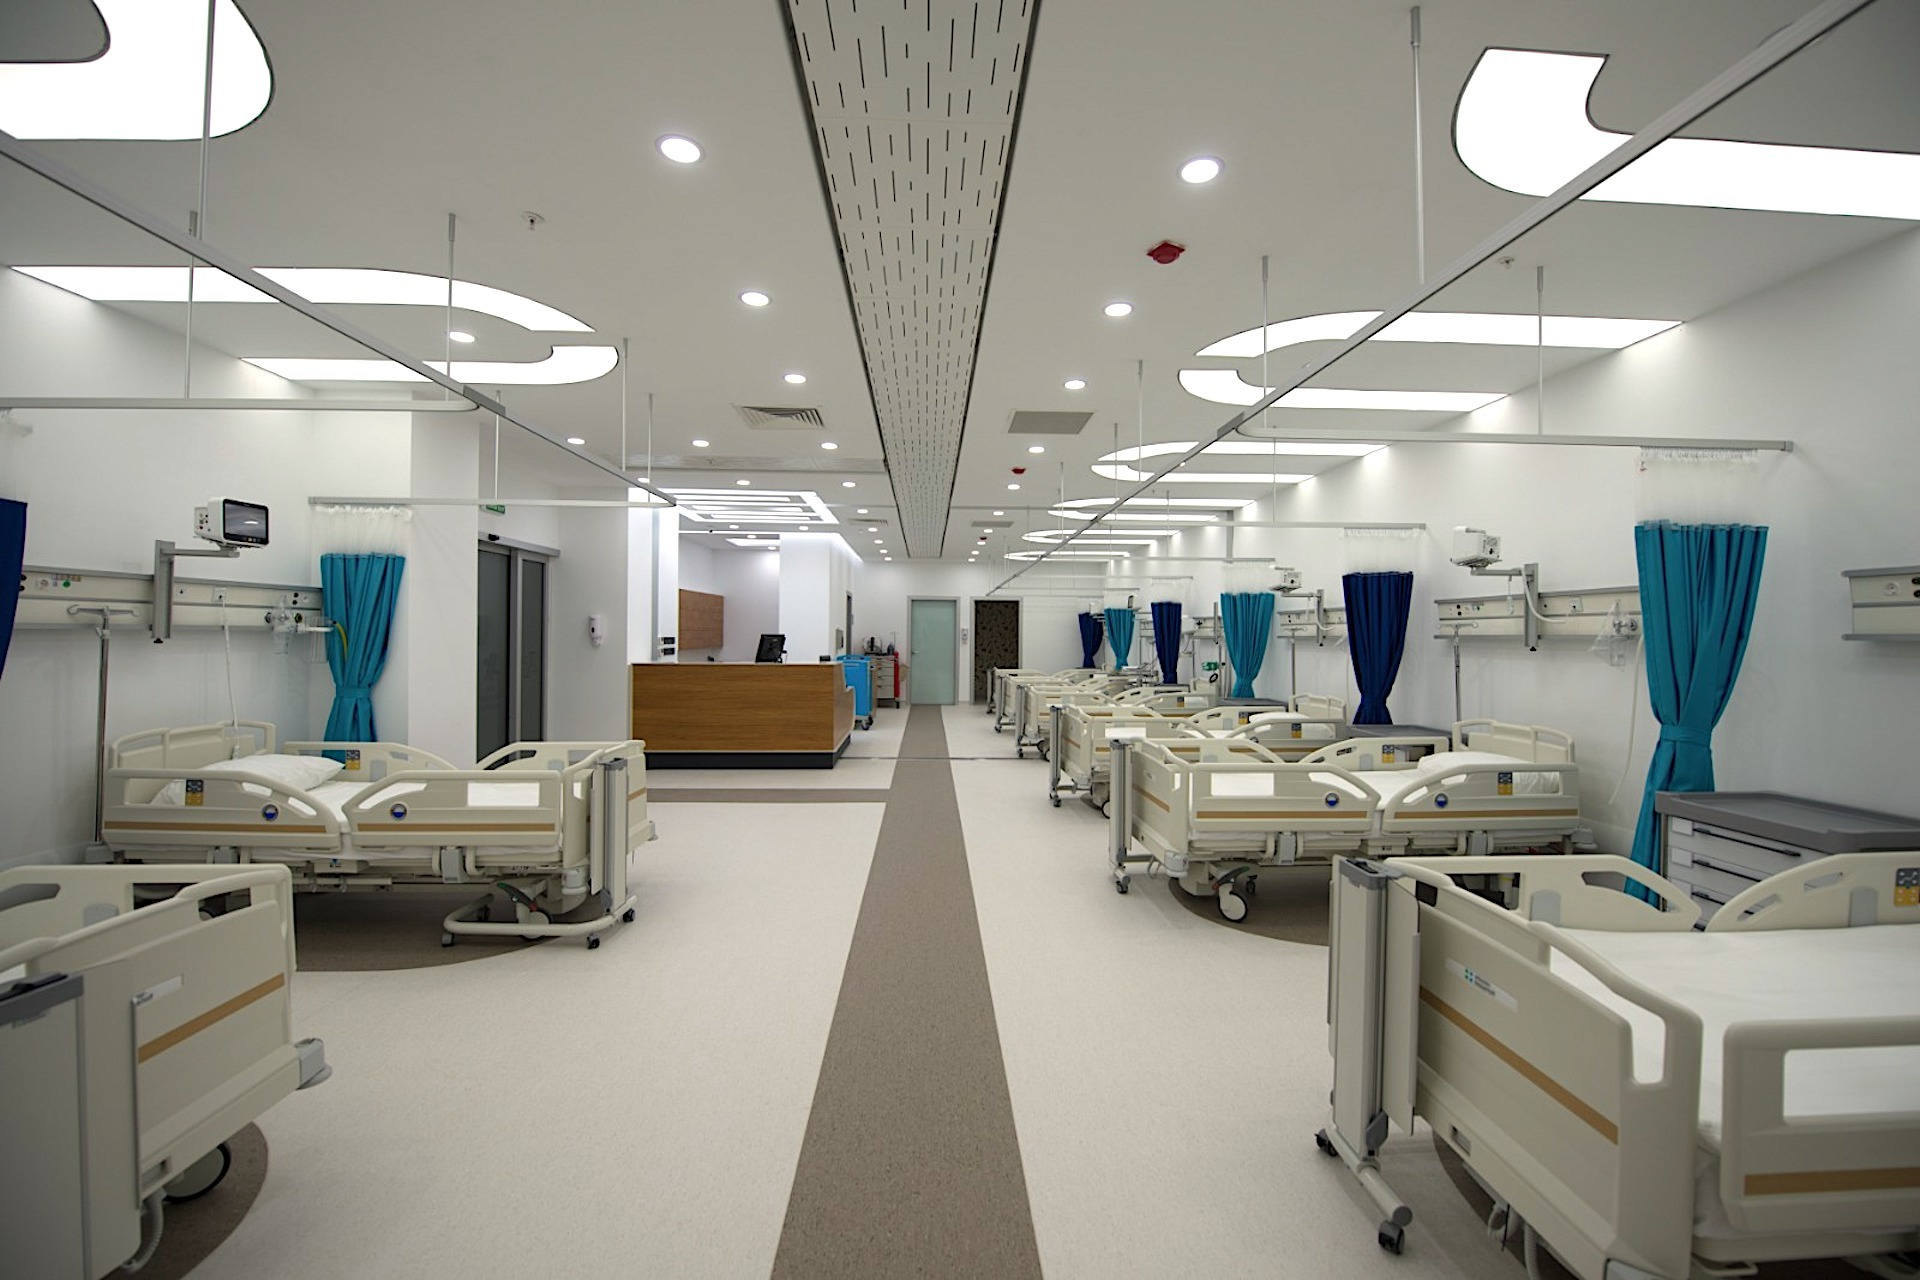 iSTANBUL ASiA SiDE HOSPiTAL for SALE